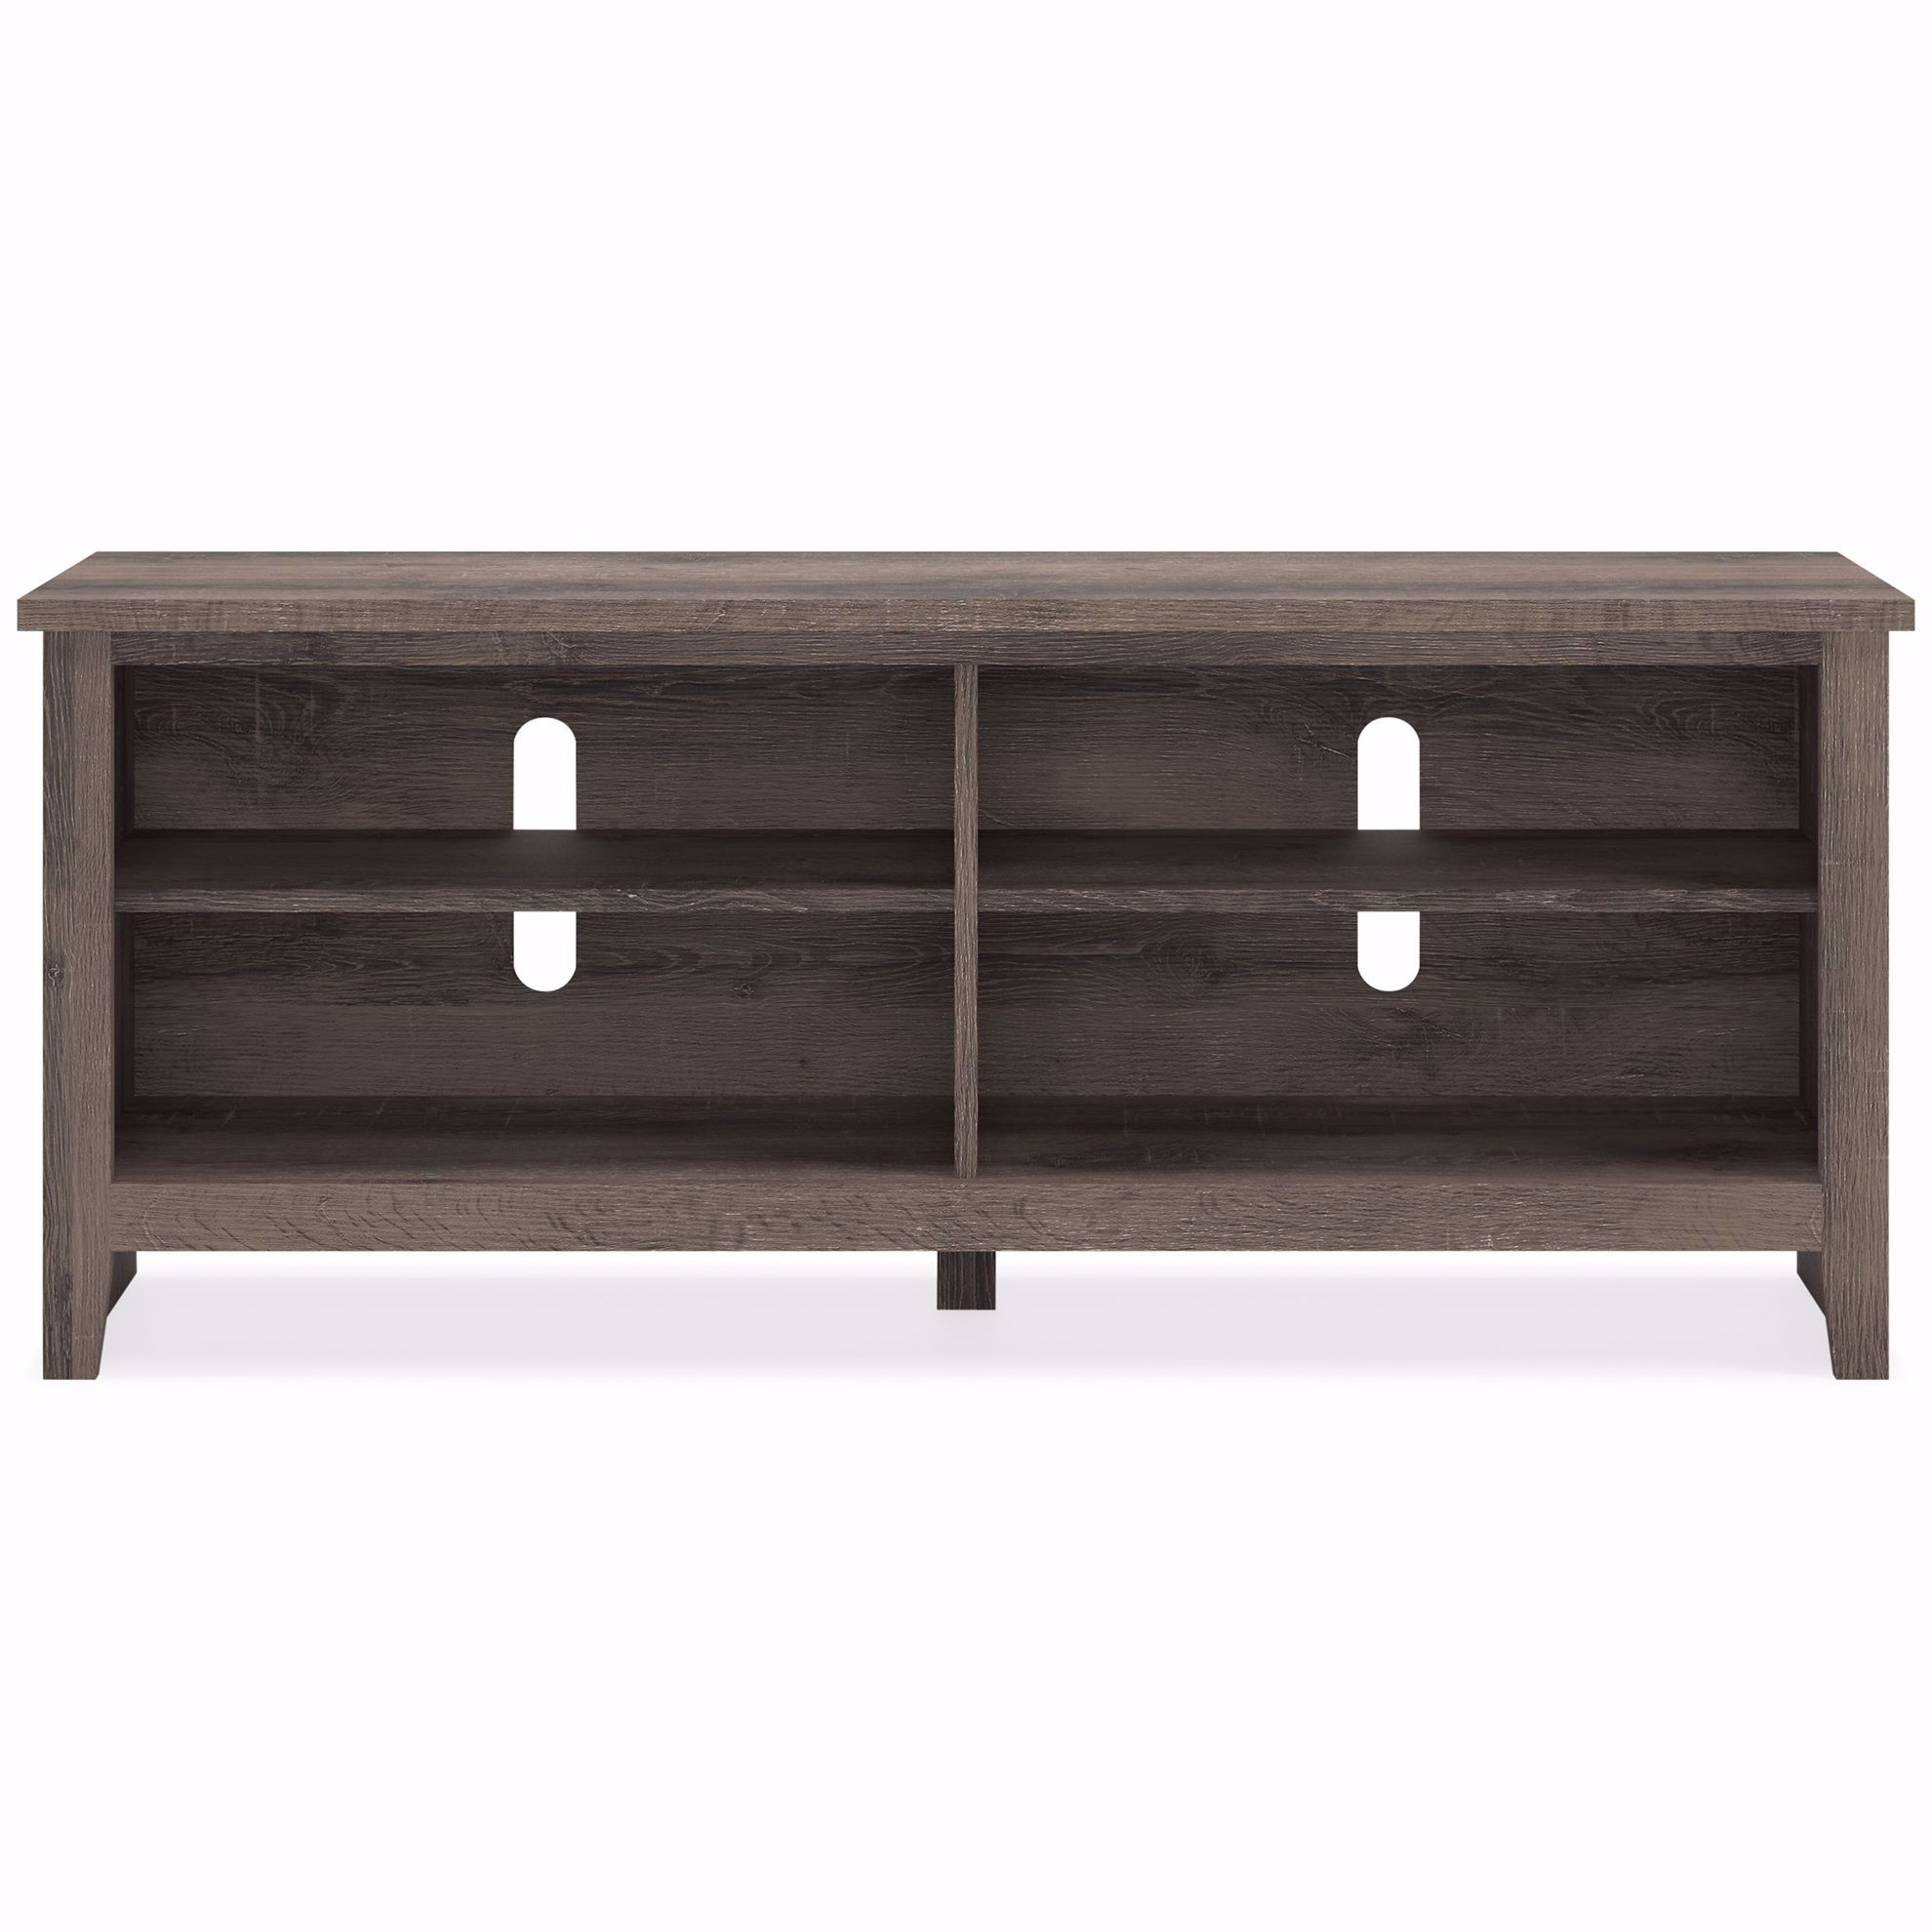 Picture of Arlenbry Large TV Stand